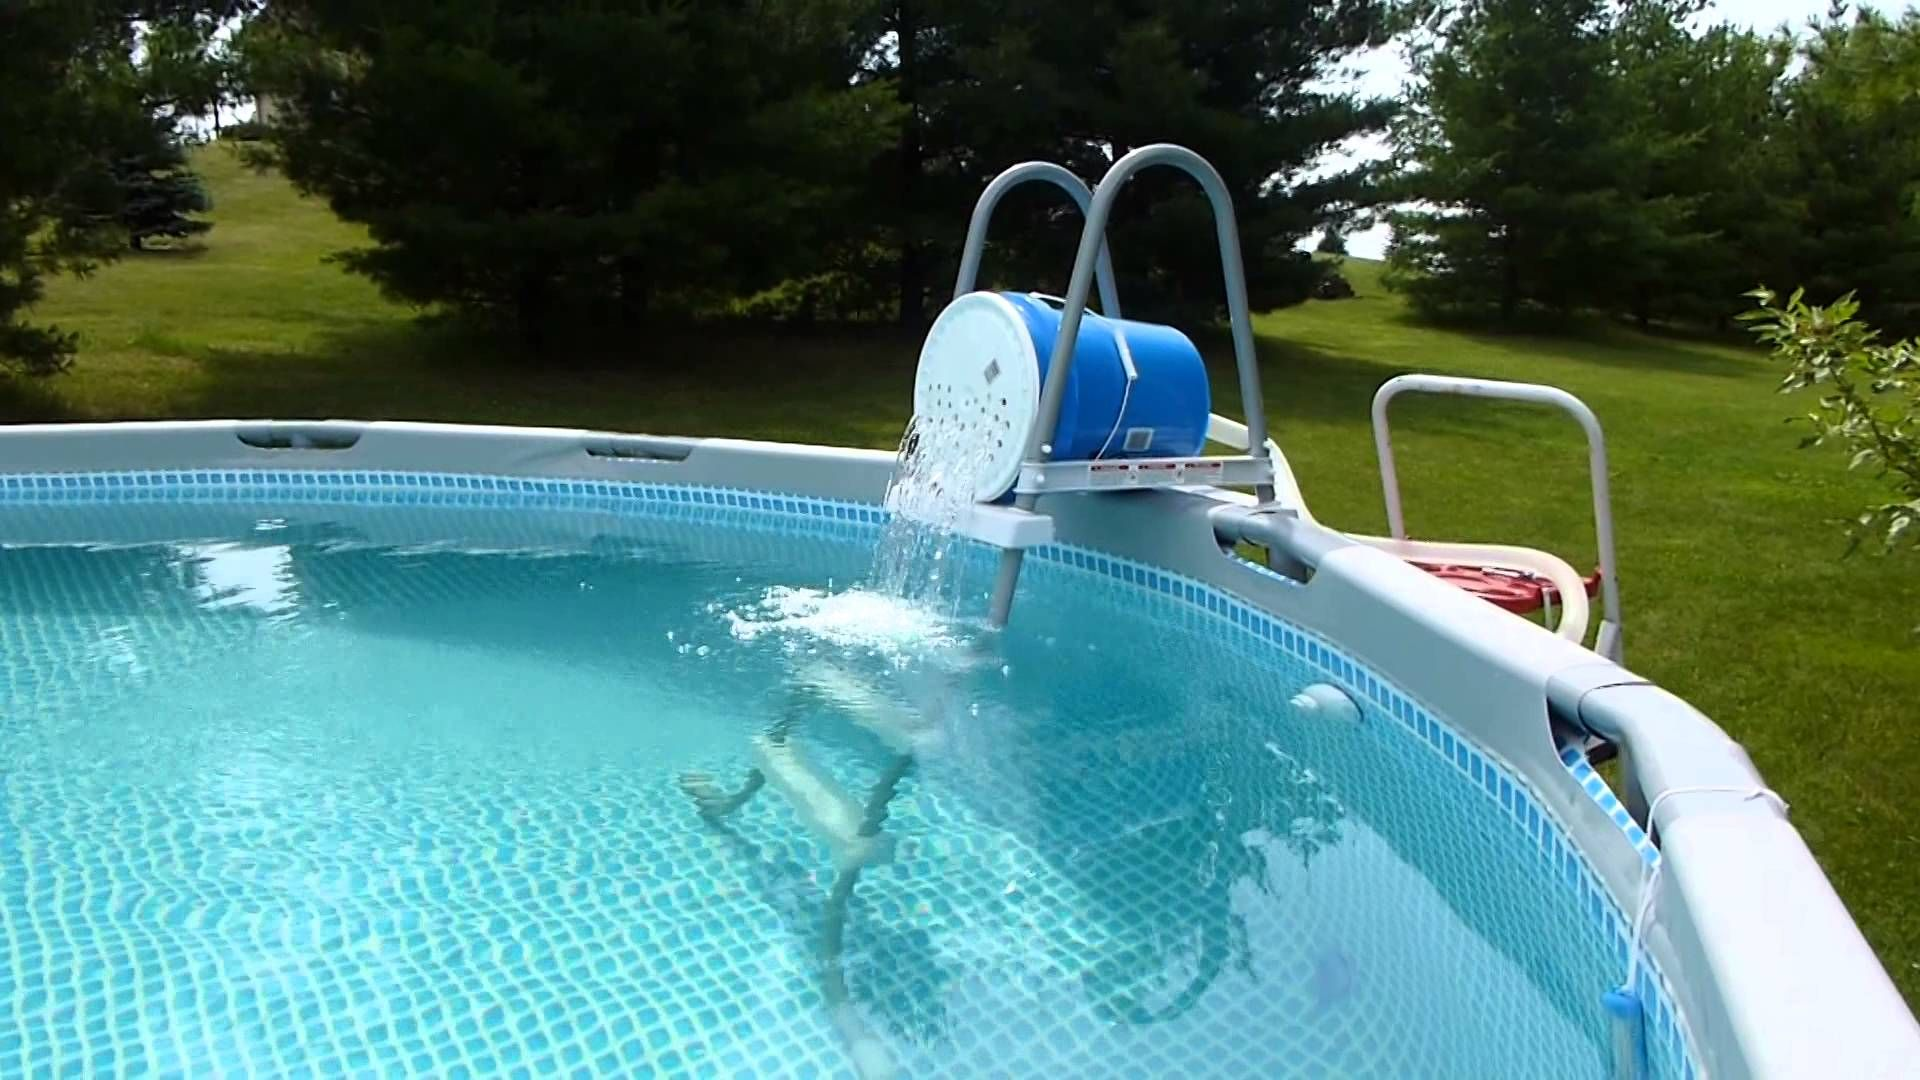 Intex Pool Pump Youtube How To Get Iron Out Of Pool Water Effective And Cheap Intex Pool